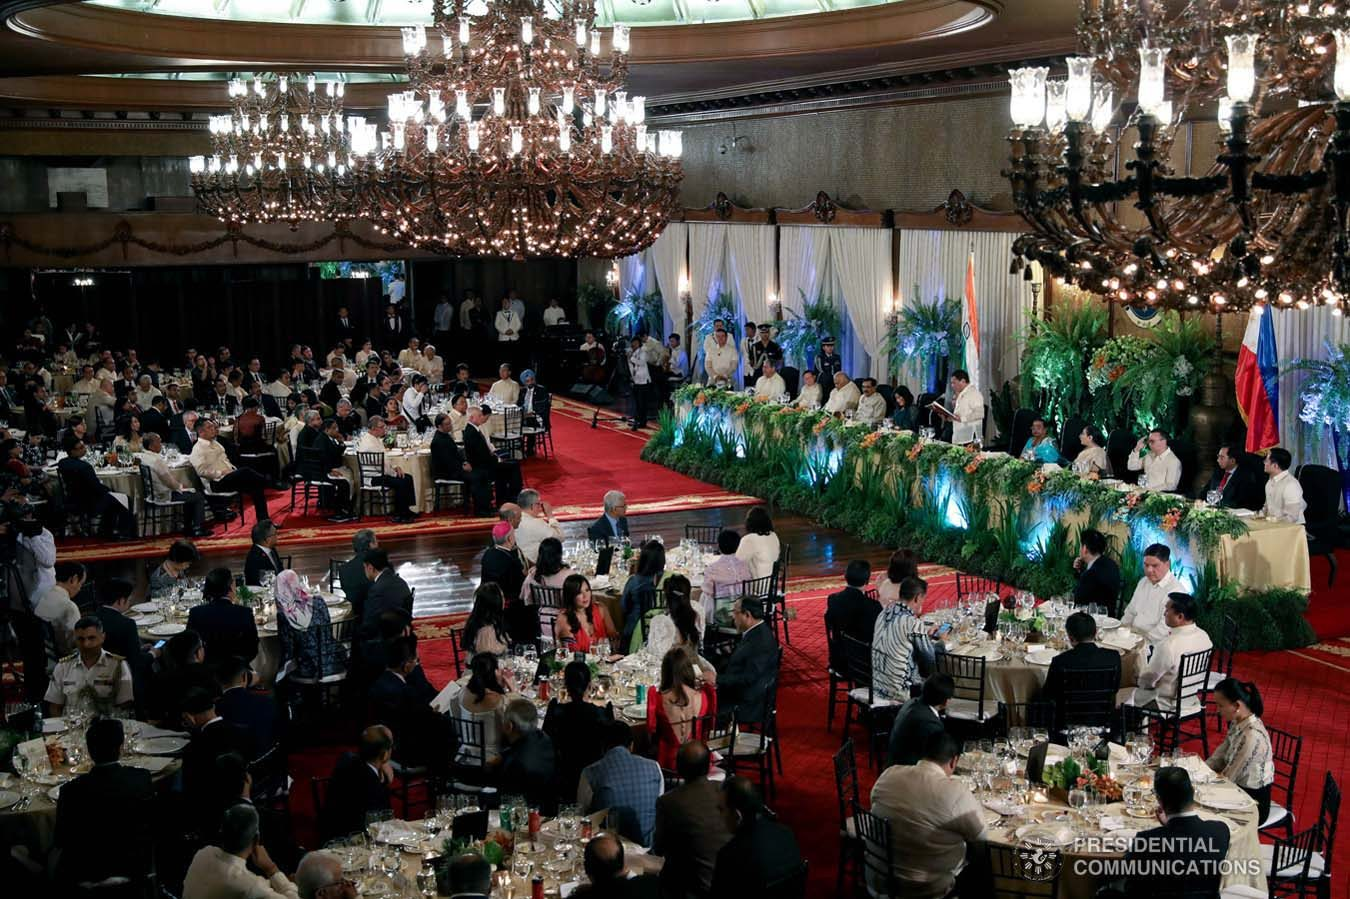 President Rodrigo Roa Duterte hosts a state banquet for President of the Republic of India Ram Nath Kovind at the Malacañan Palace on October 18, 2019. President Kovind is on a five-day state visit to the Philippines. RICHARD MADELO/PRESIDENTIAL PHOTO